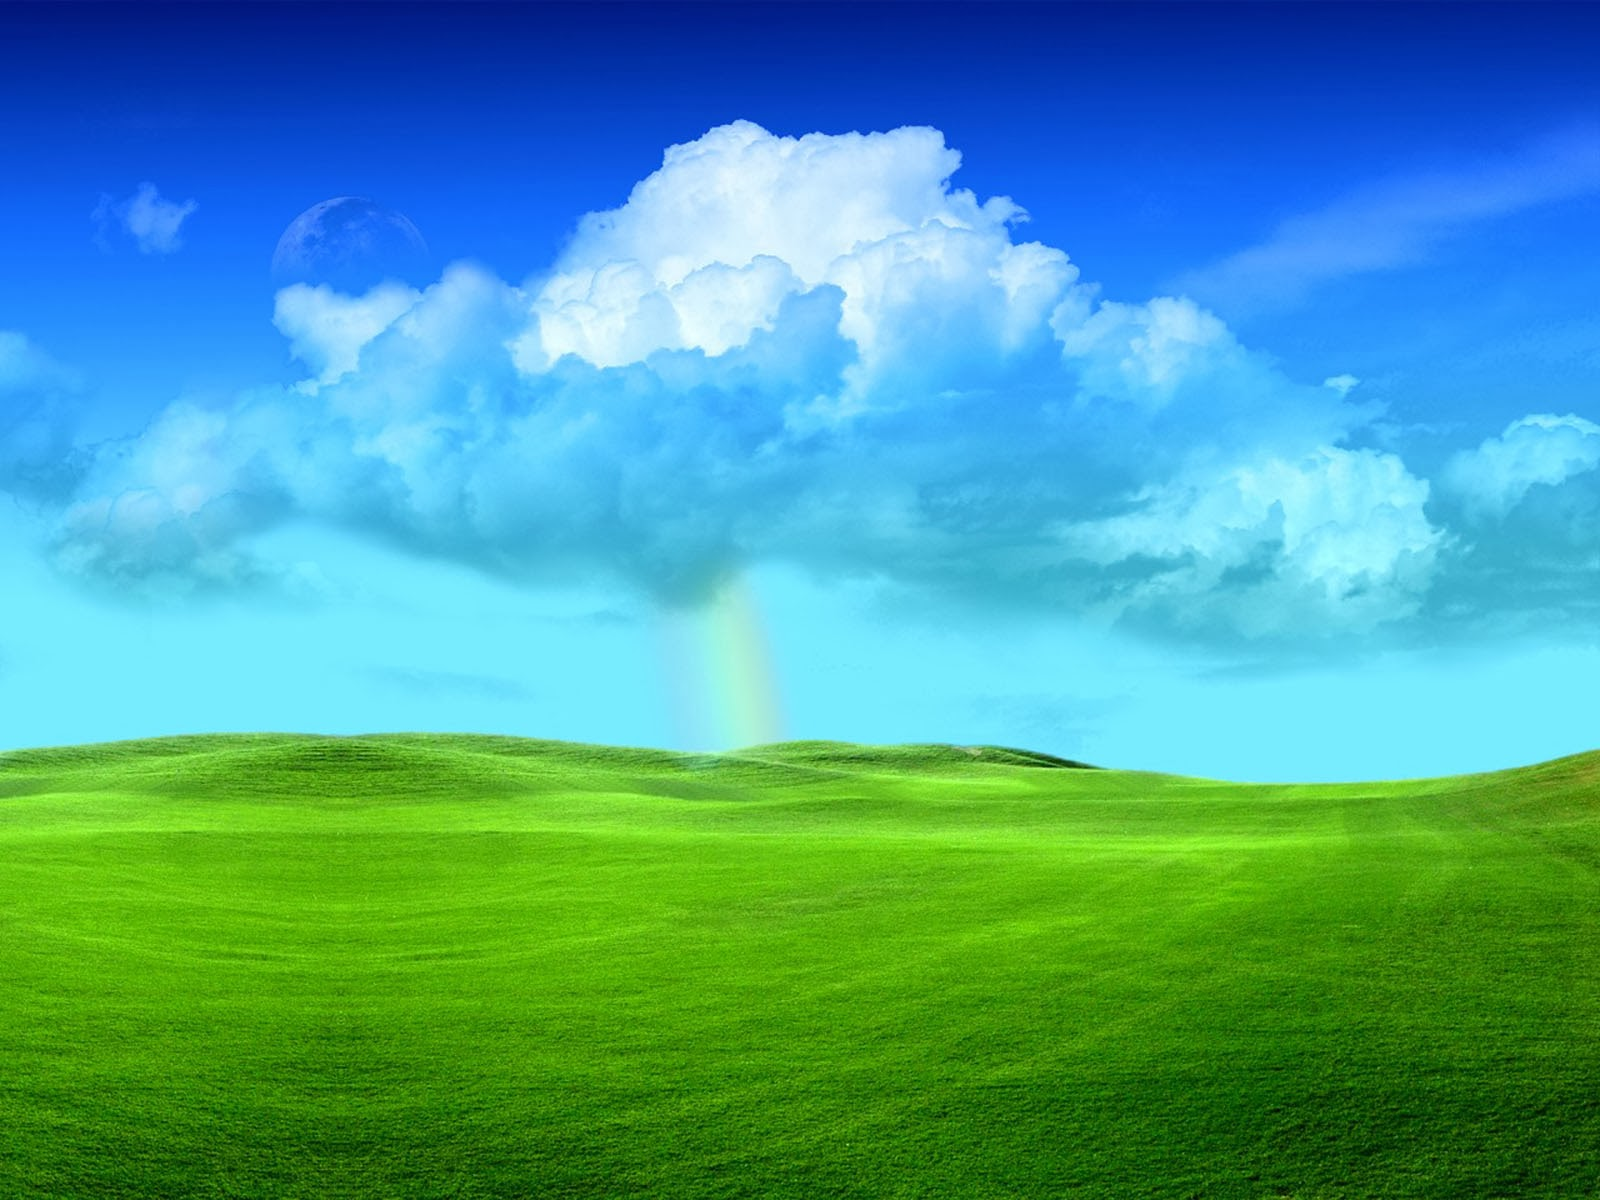 Wallpapers windows vista bliss wallpapers - Foto wallpaper ...